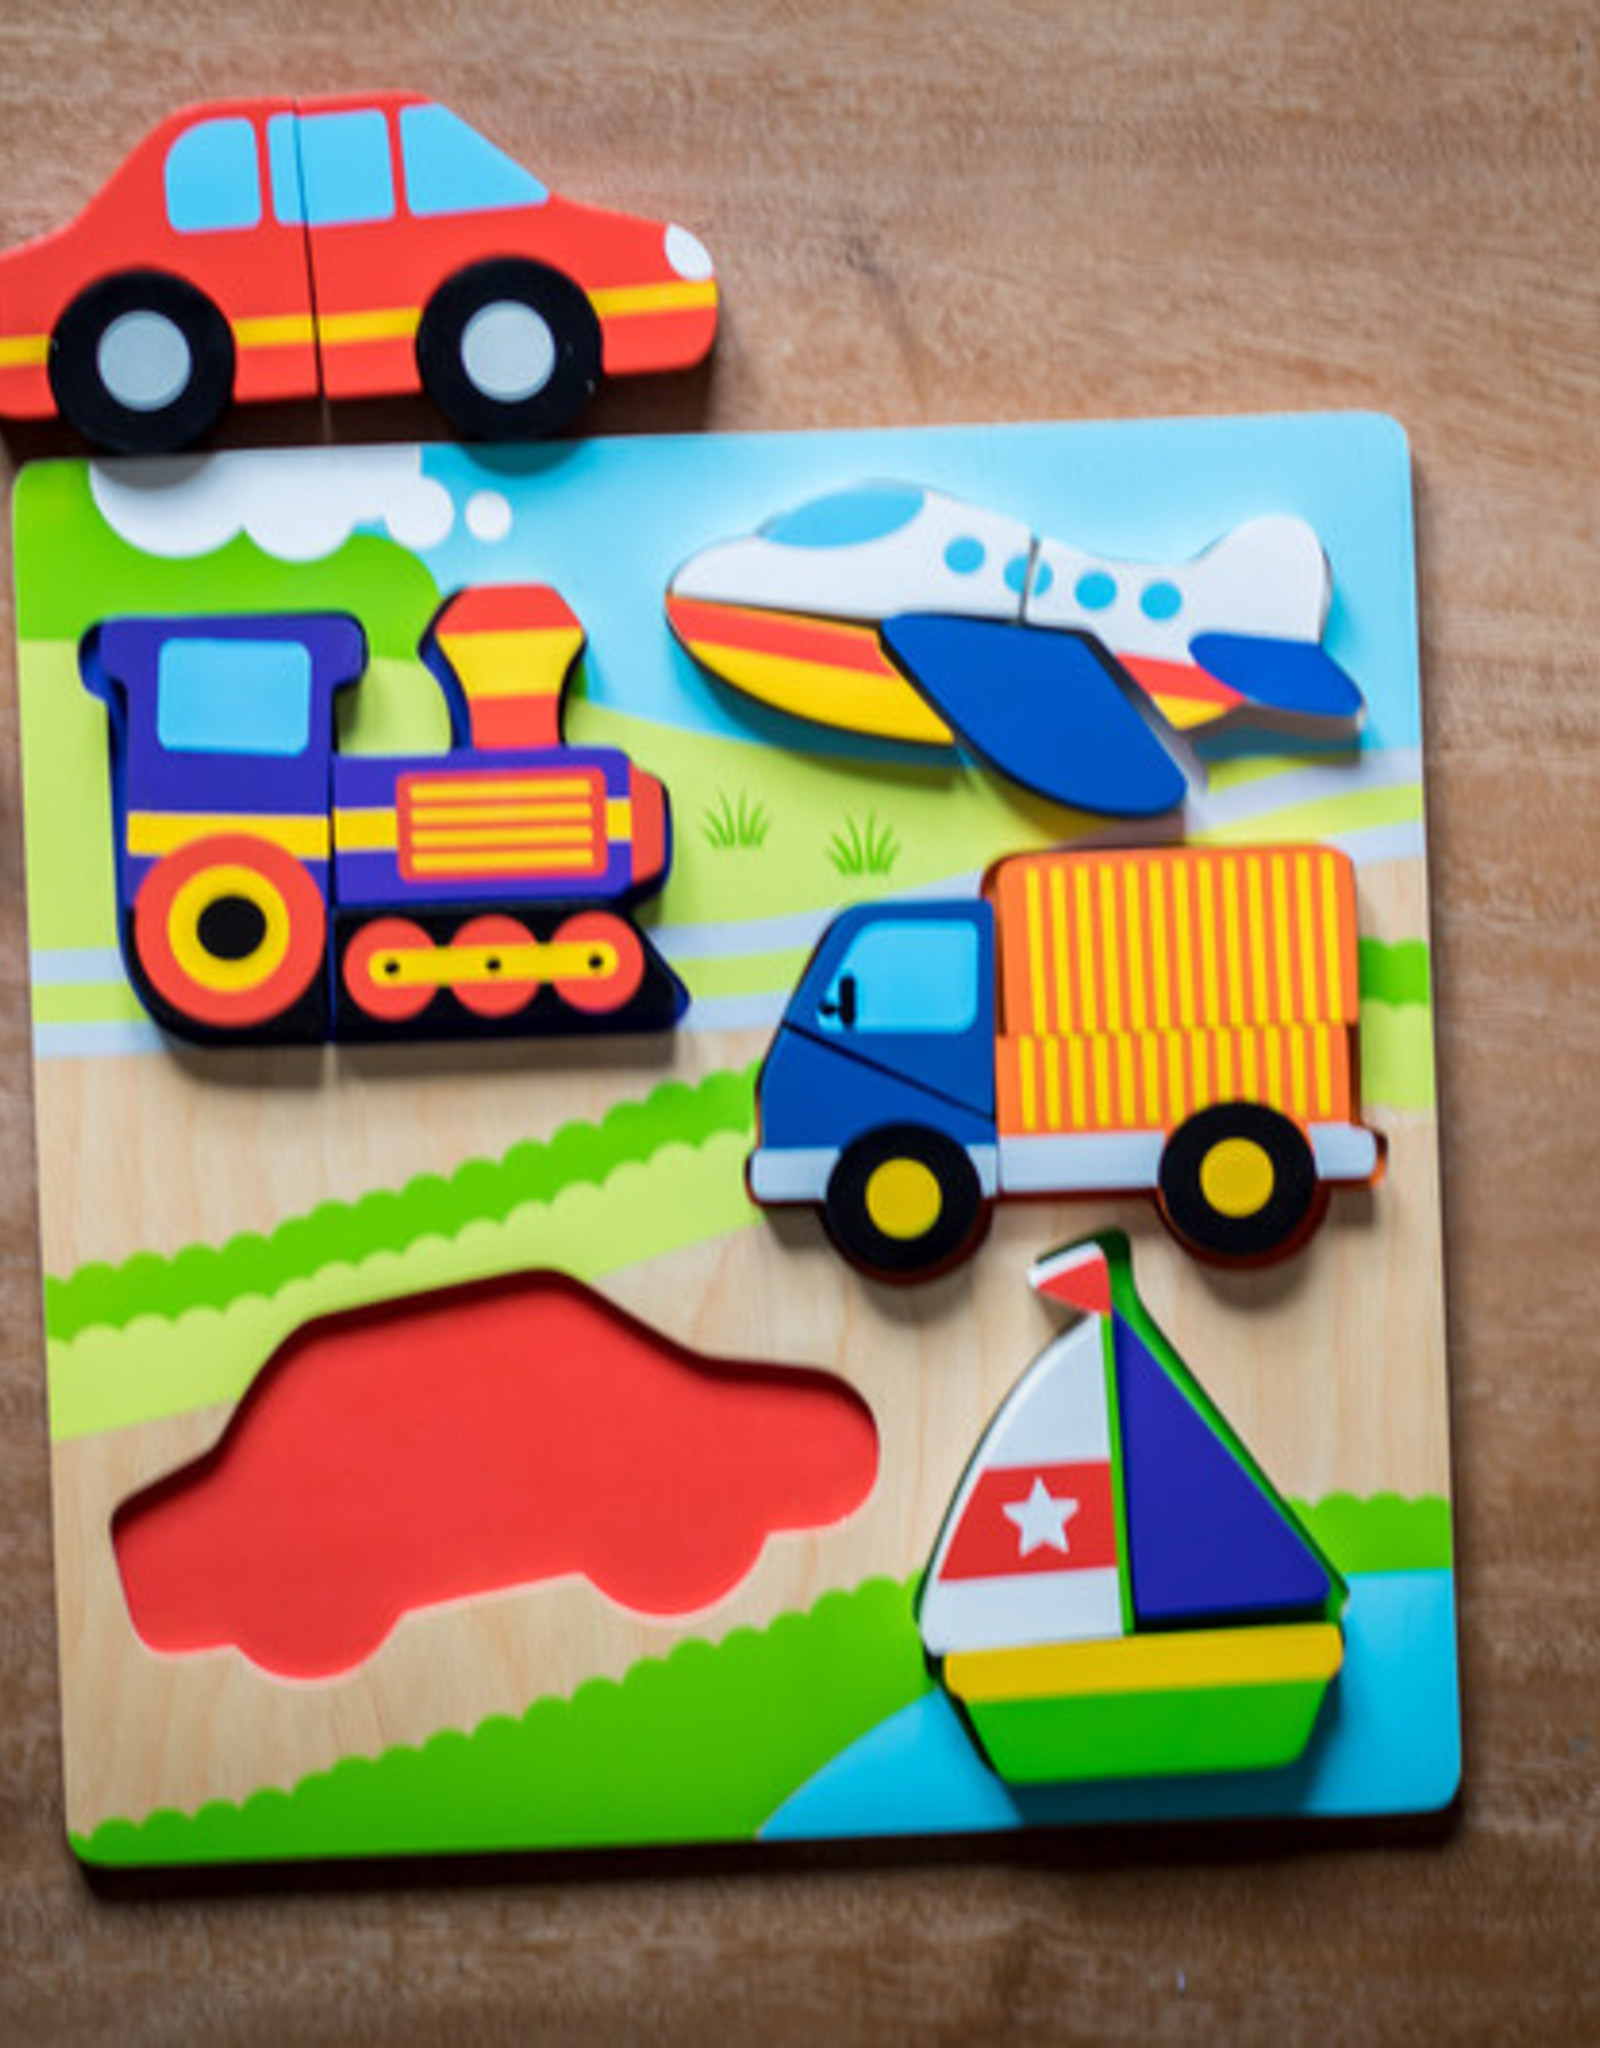 Kiddie Conect Kiddie Connect - Transport Jigsaw Chunky Puzzle